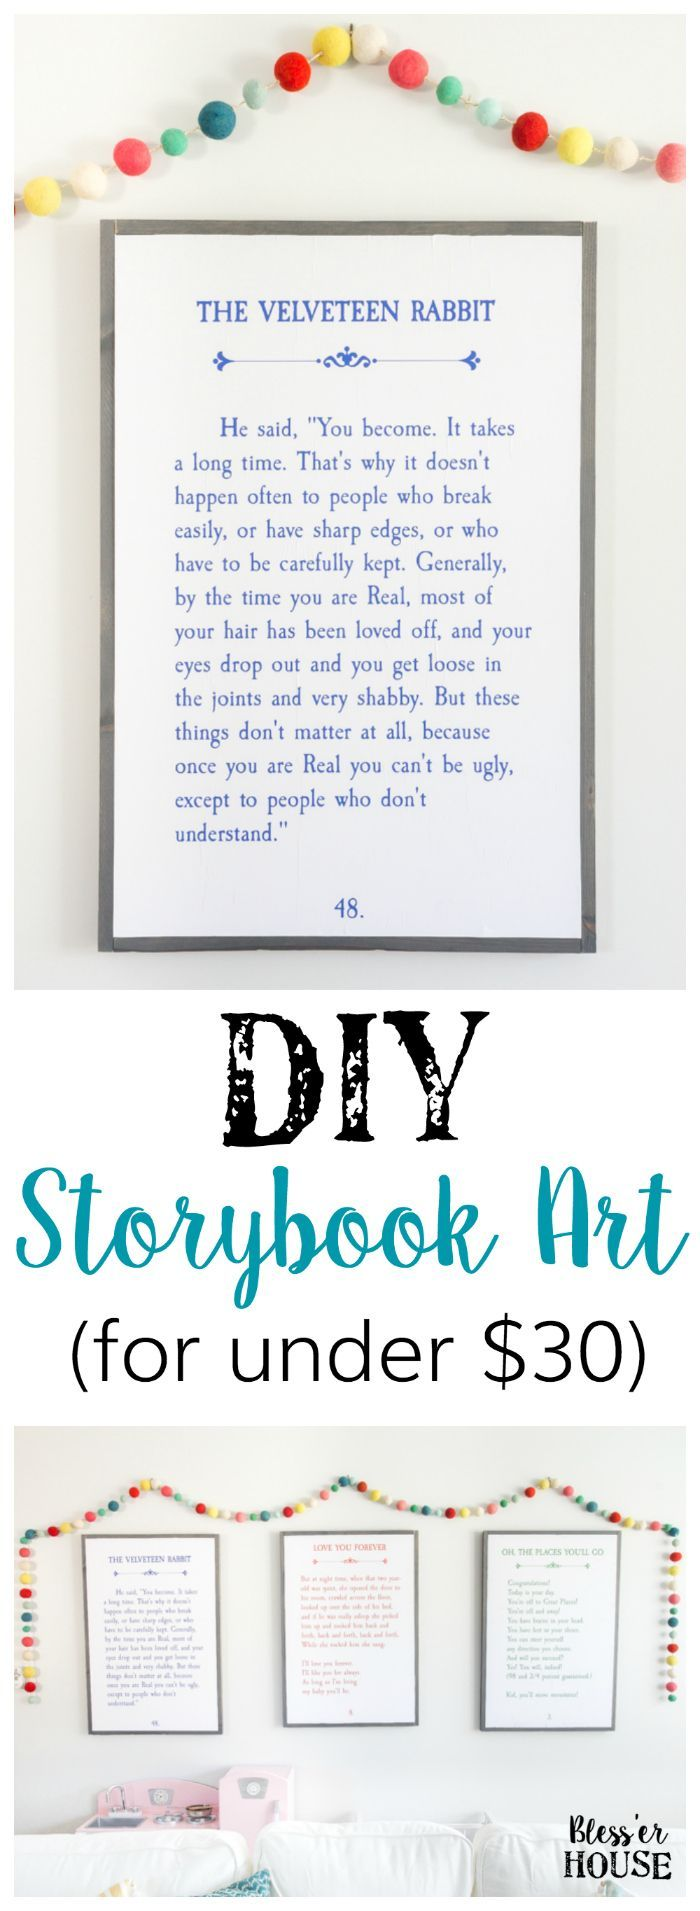 DIY Storybook Art   http://blesserhouse.com - How to make DIY storybook art for less than $30 using just plywood, 1x2 boards, and colored engineer prints plus 3 free printables.